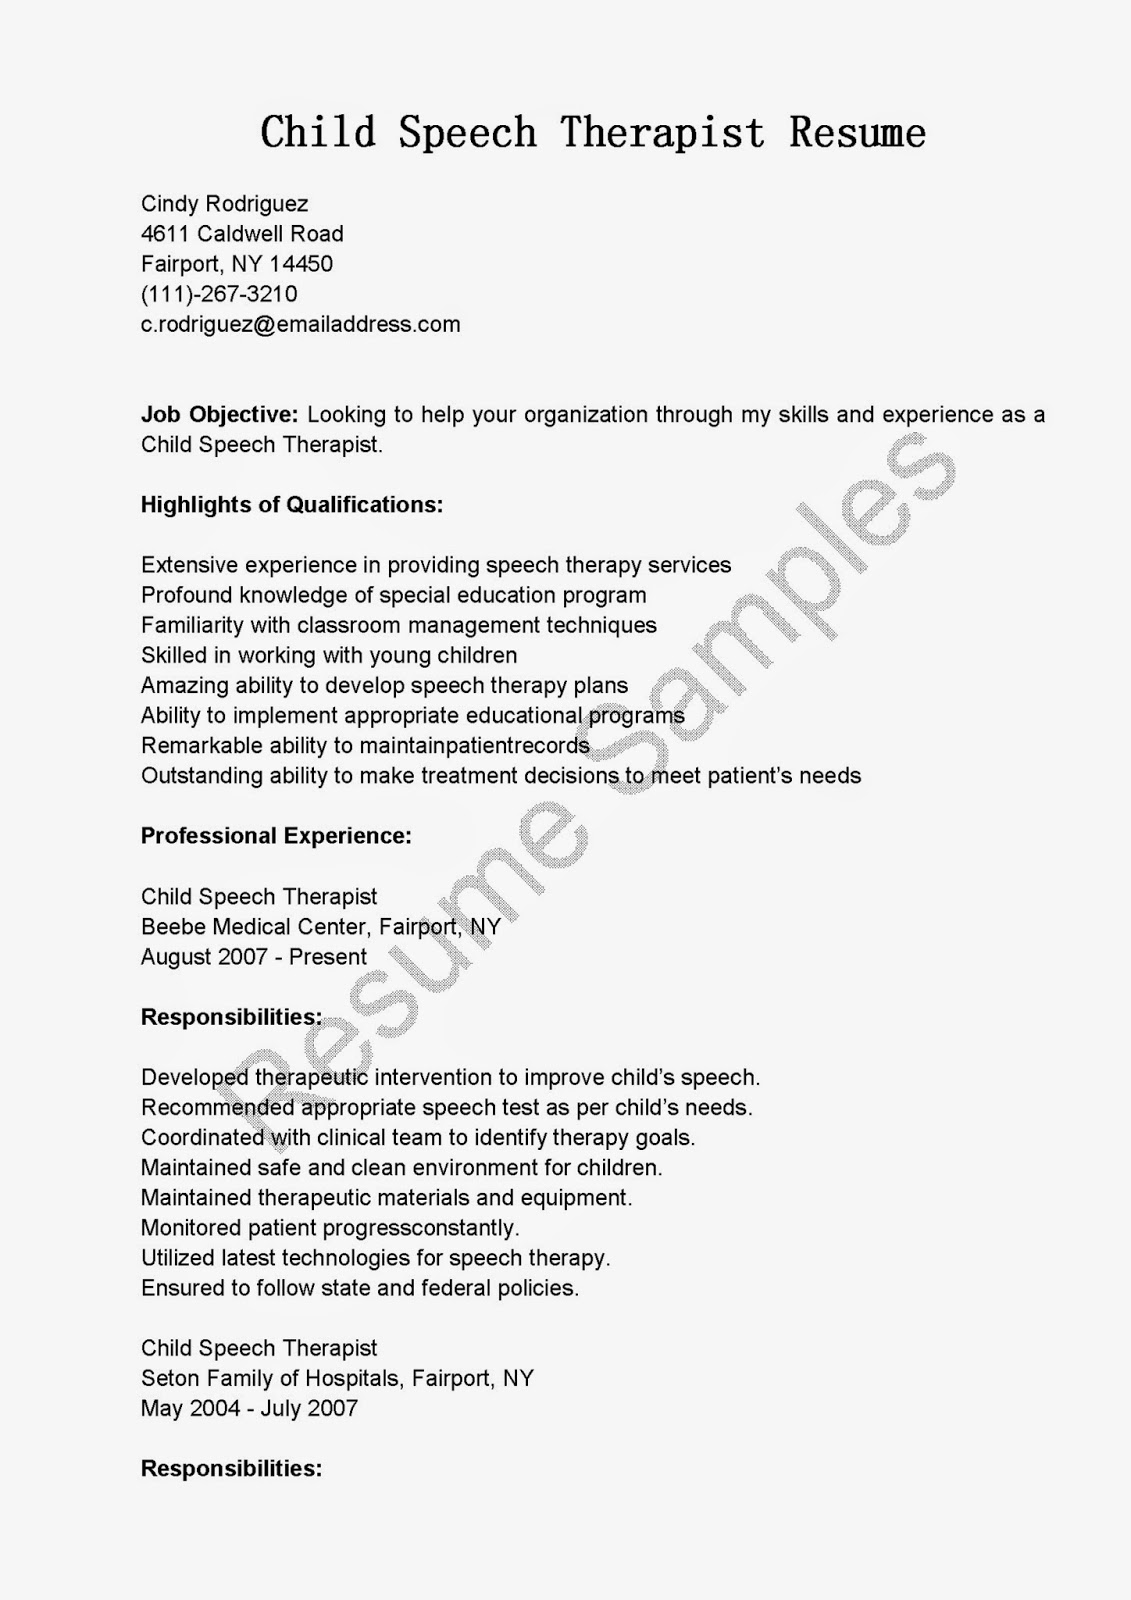 resume sles child speech therapist resume sle